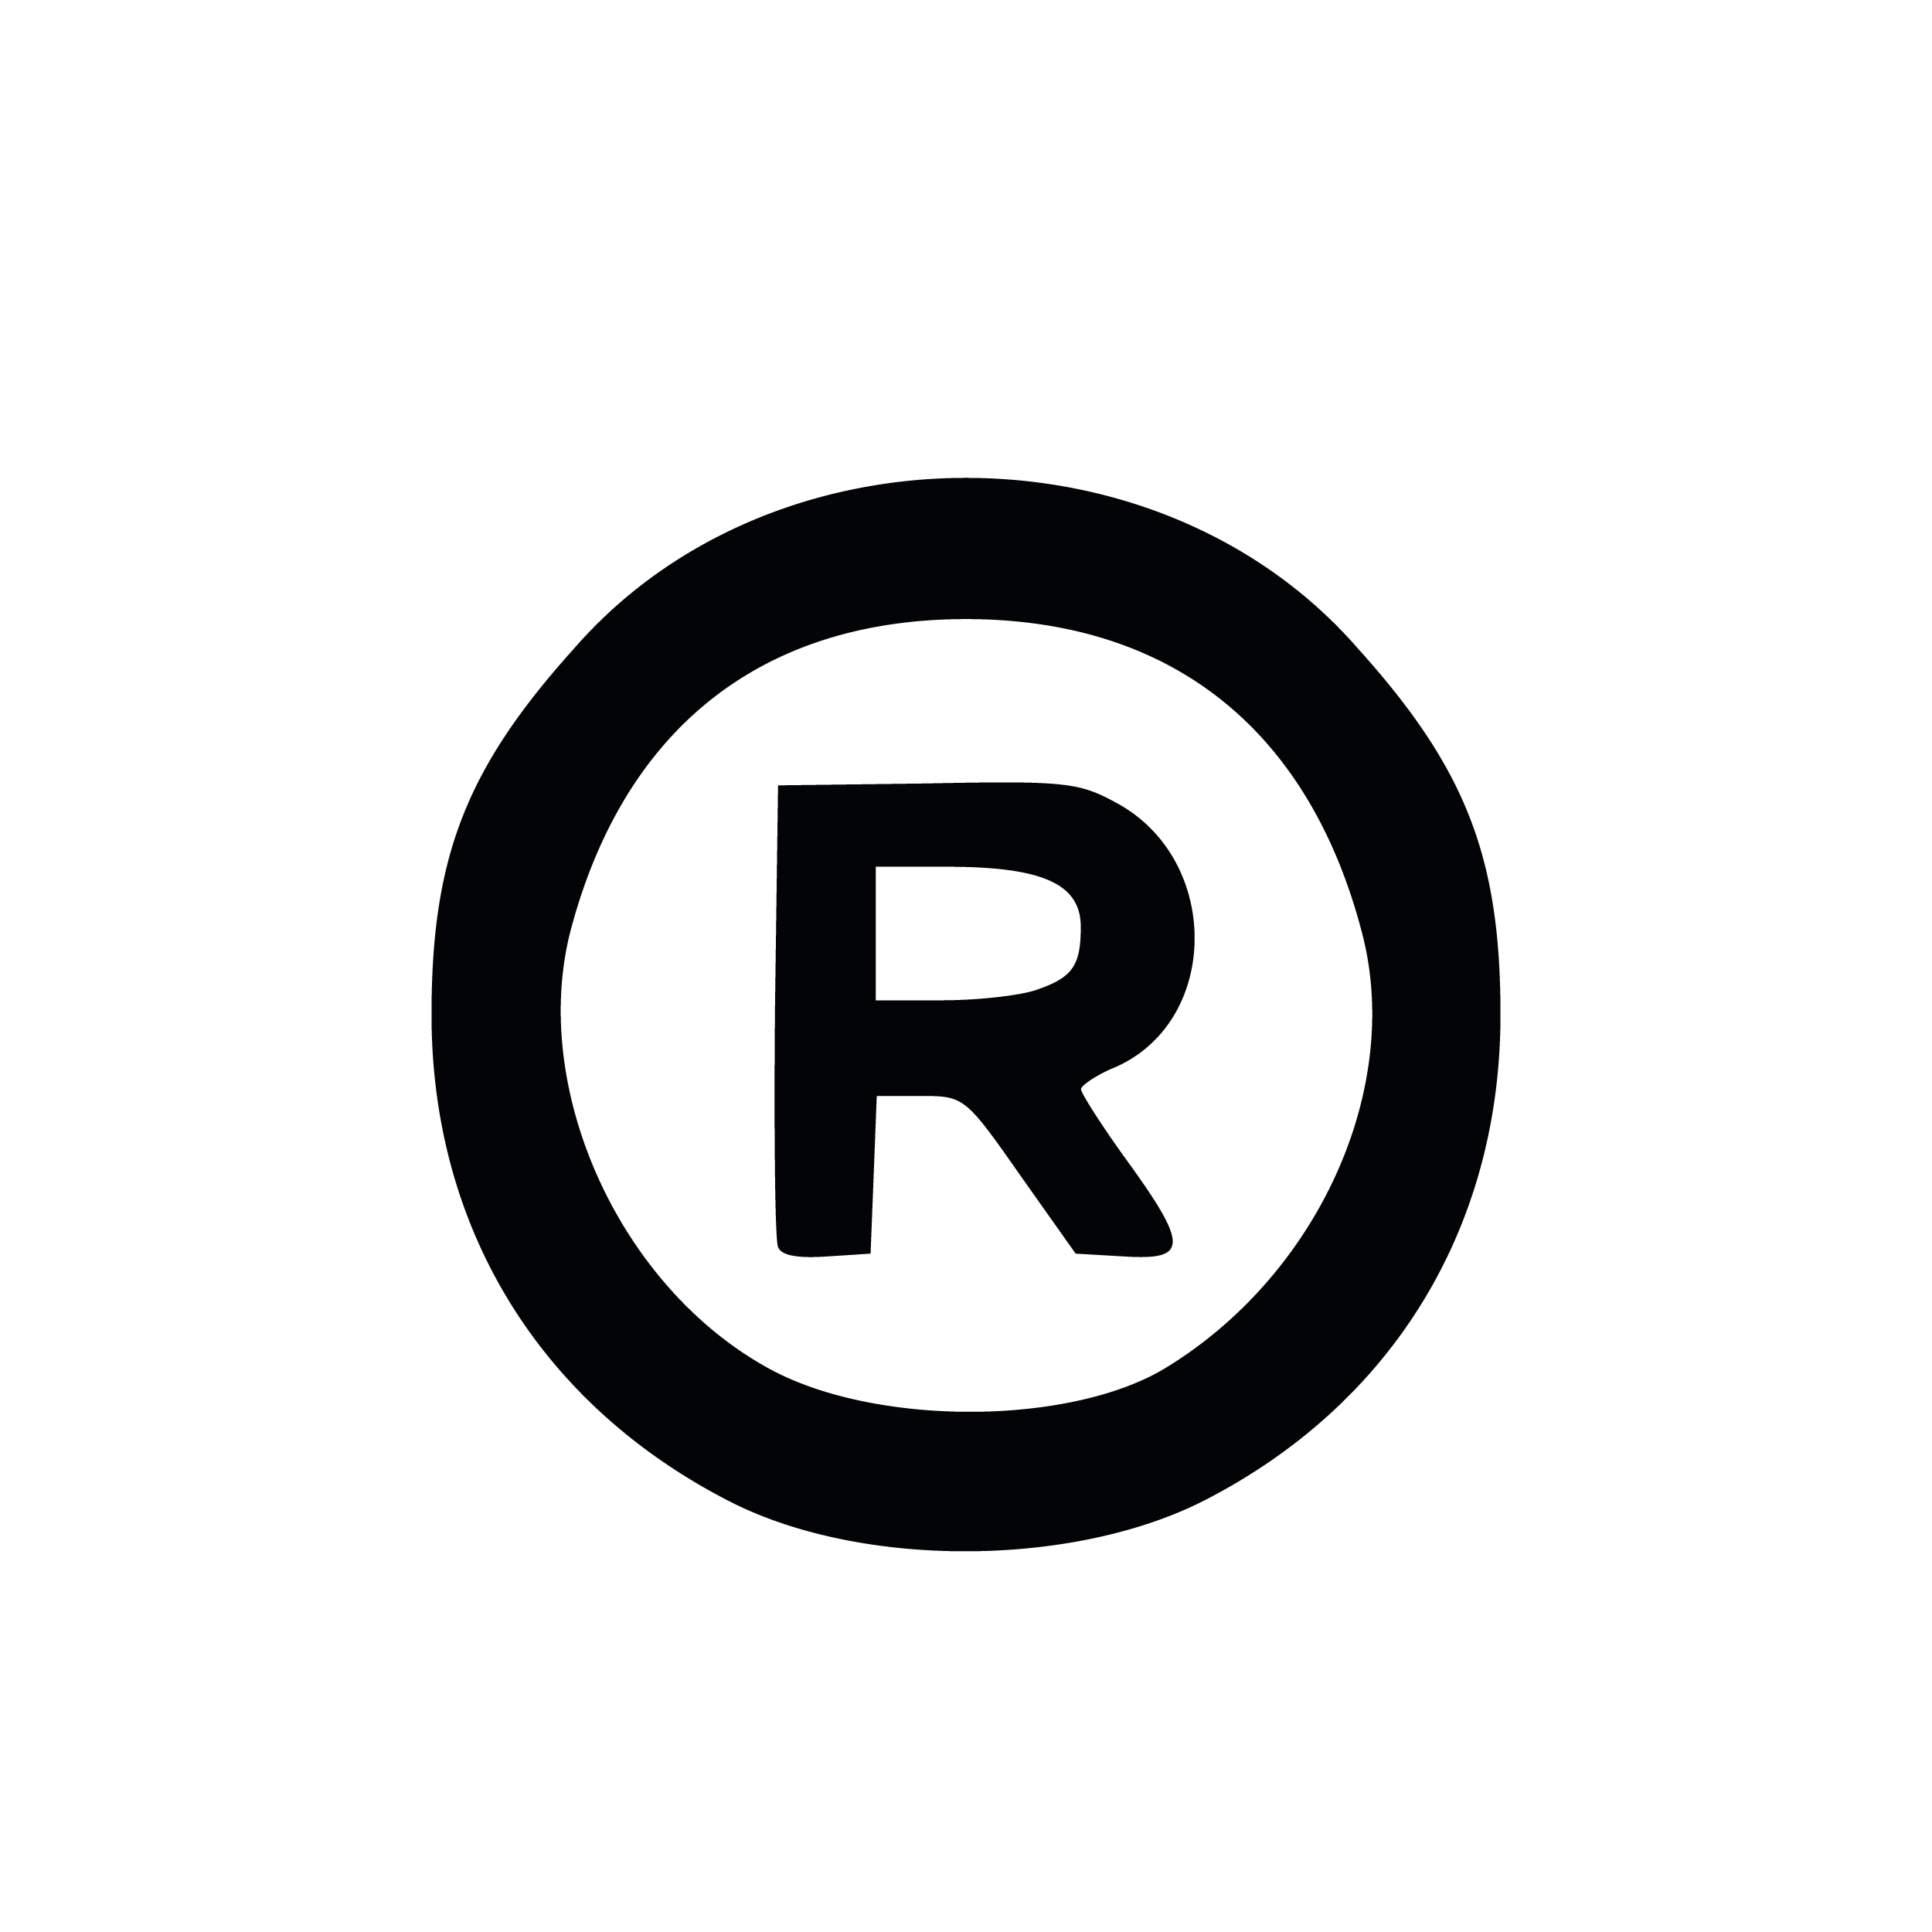 Trademark your name and logo -